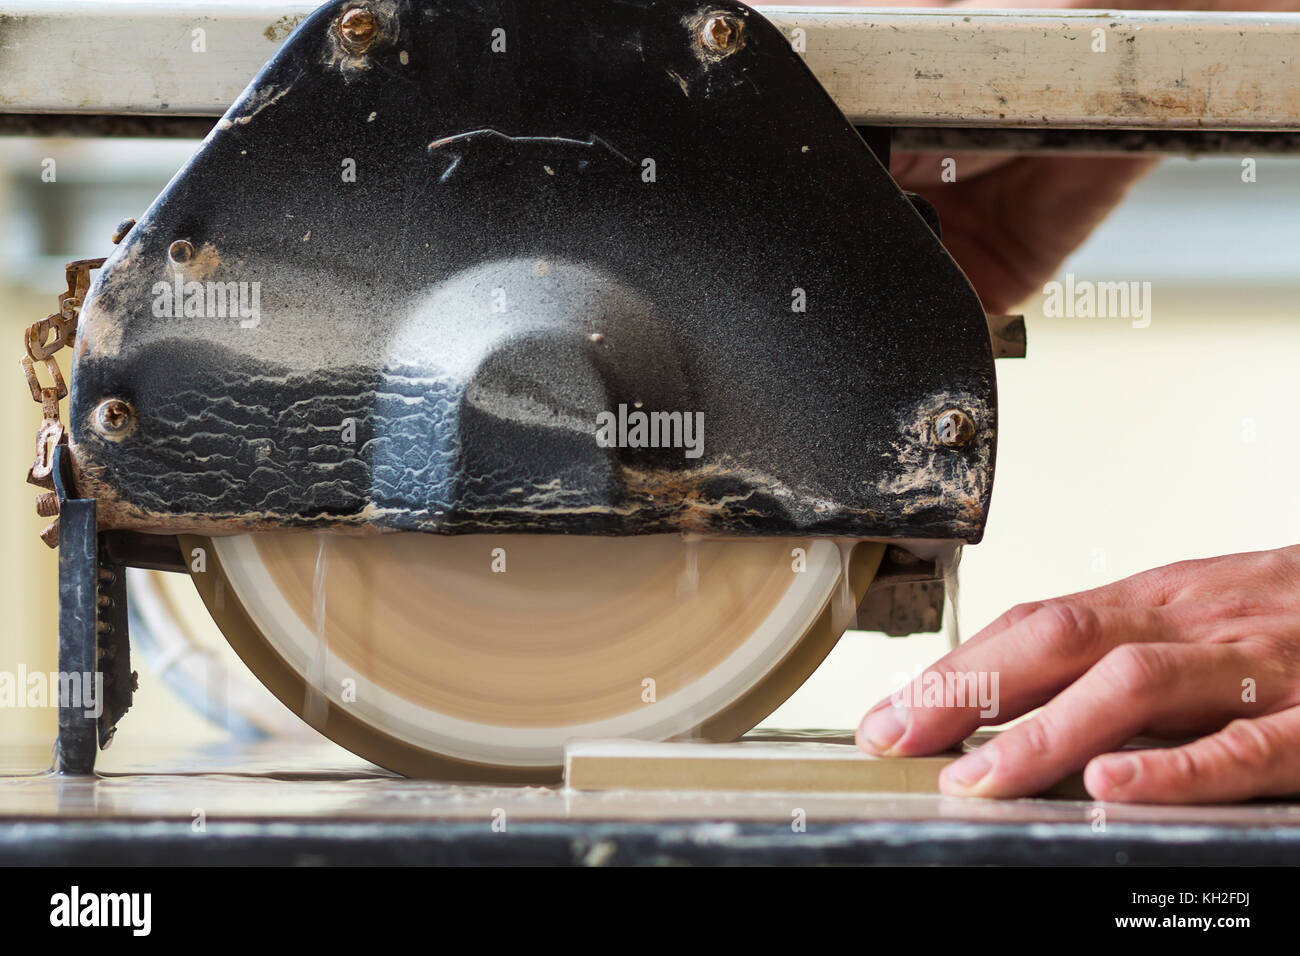 Worker Hand Cutting Ceramic Tile With Water Cutting Machine Close Up